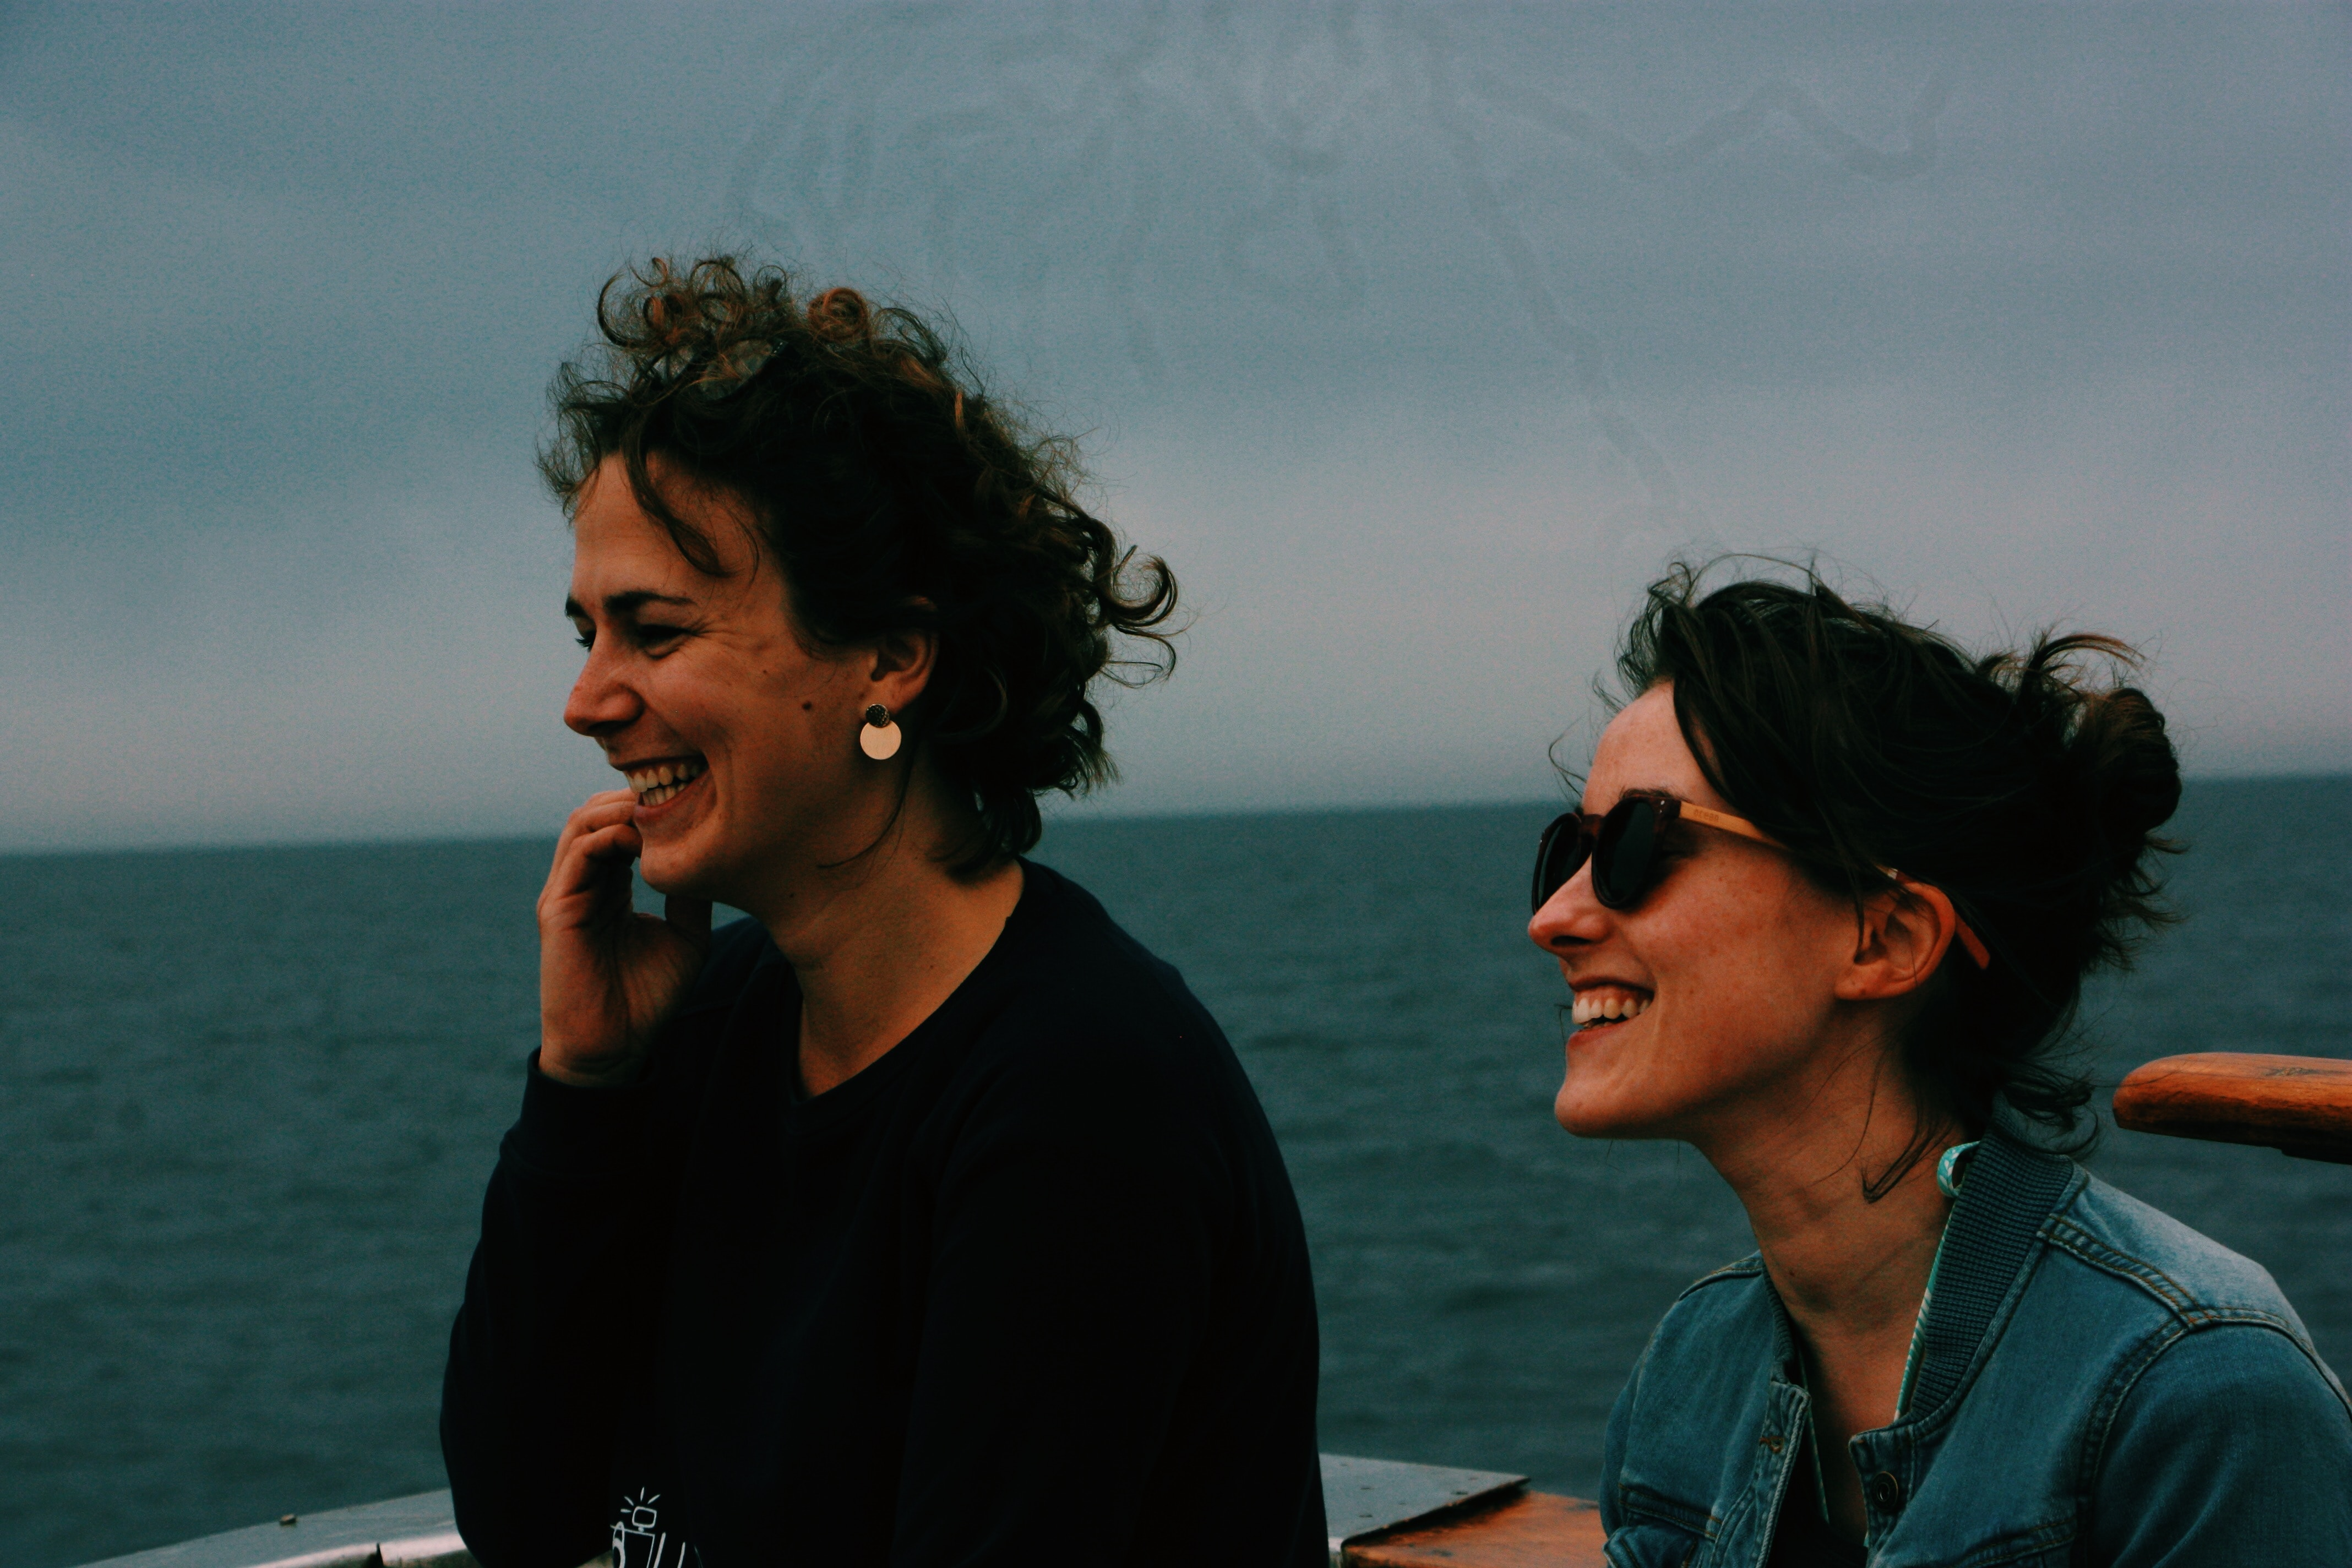 Two women stand smiling on what appears to be a boat on the ocean. How do you casually ask someone to read the Bible with you? This article explores options for inviting non-believing friends.